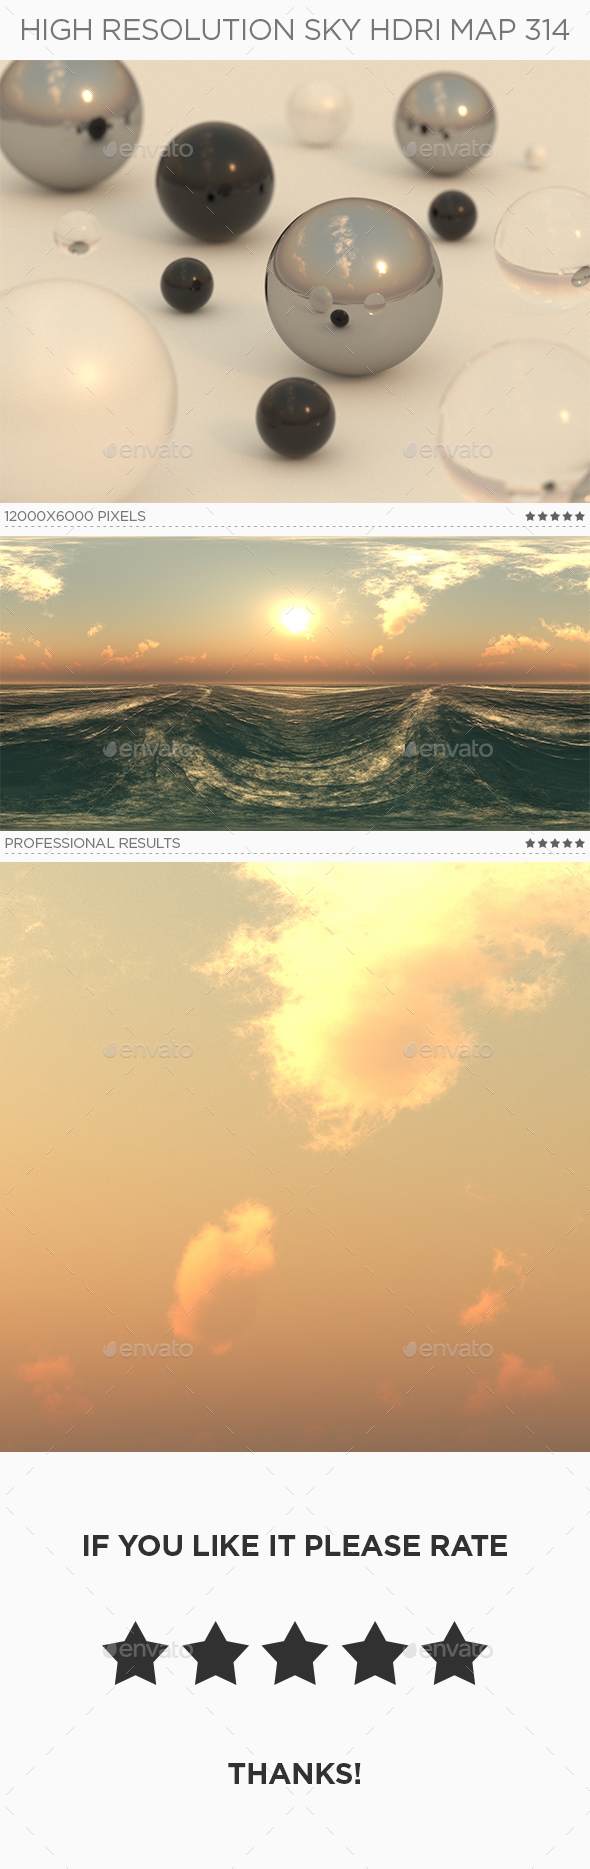 High Resolution Sky HDRi Map 314 - 3DOcean Item for Sale